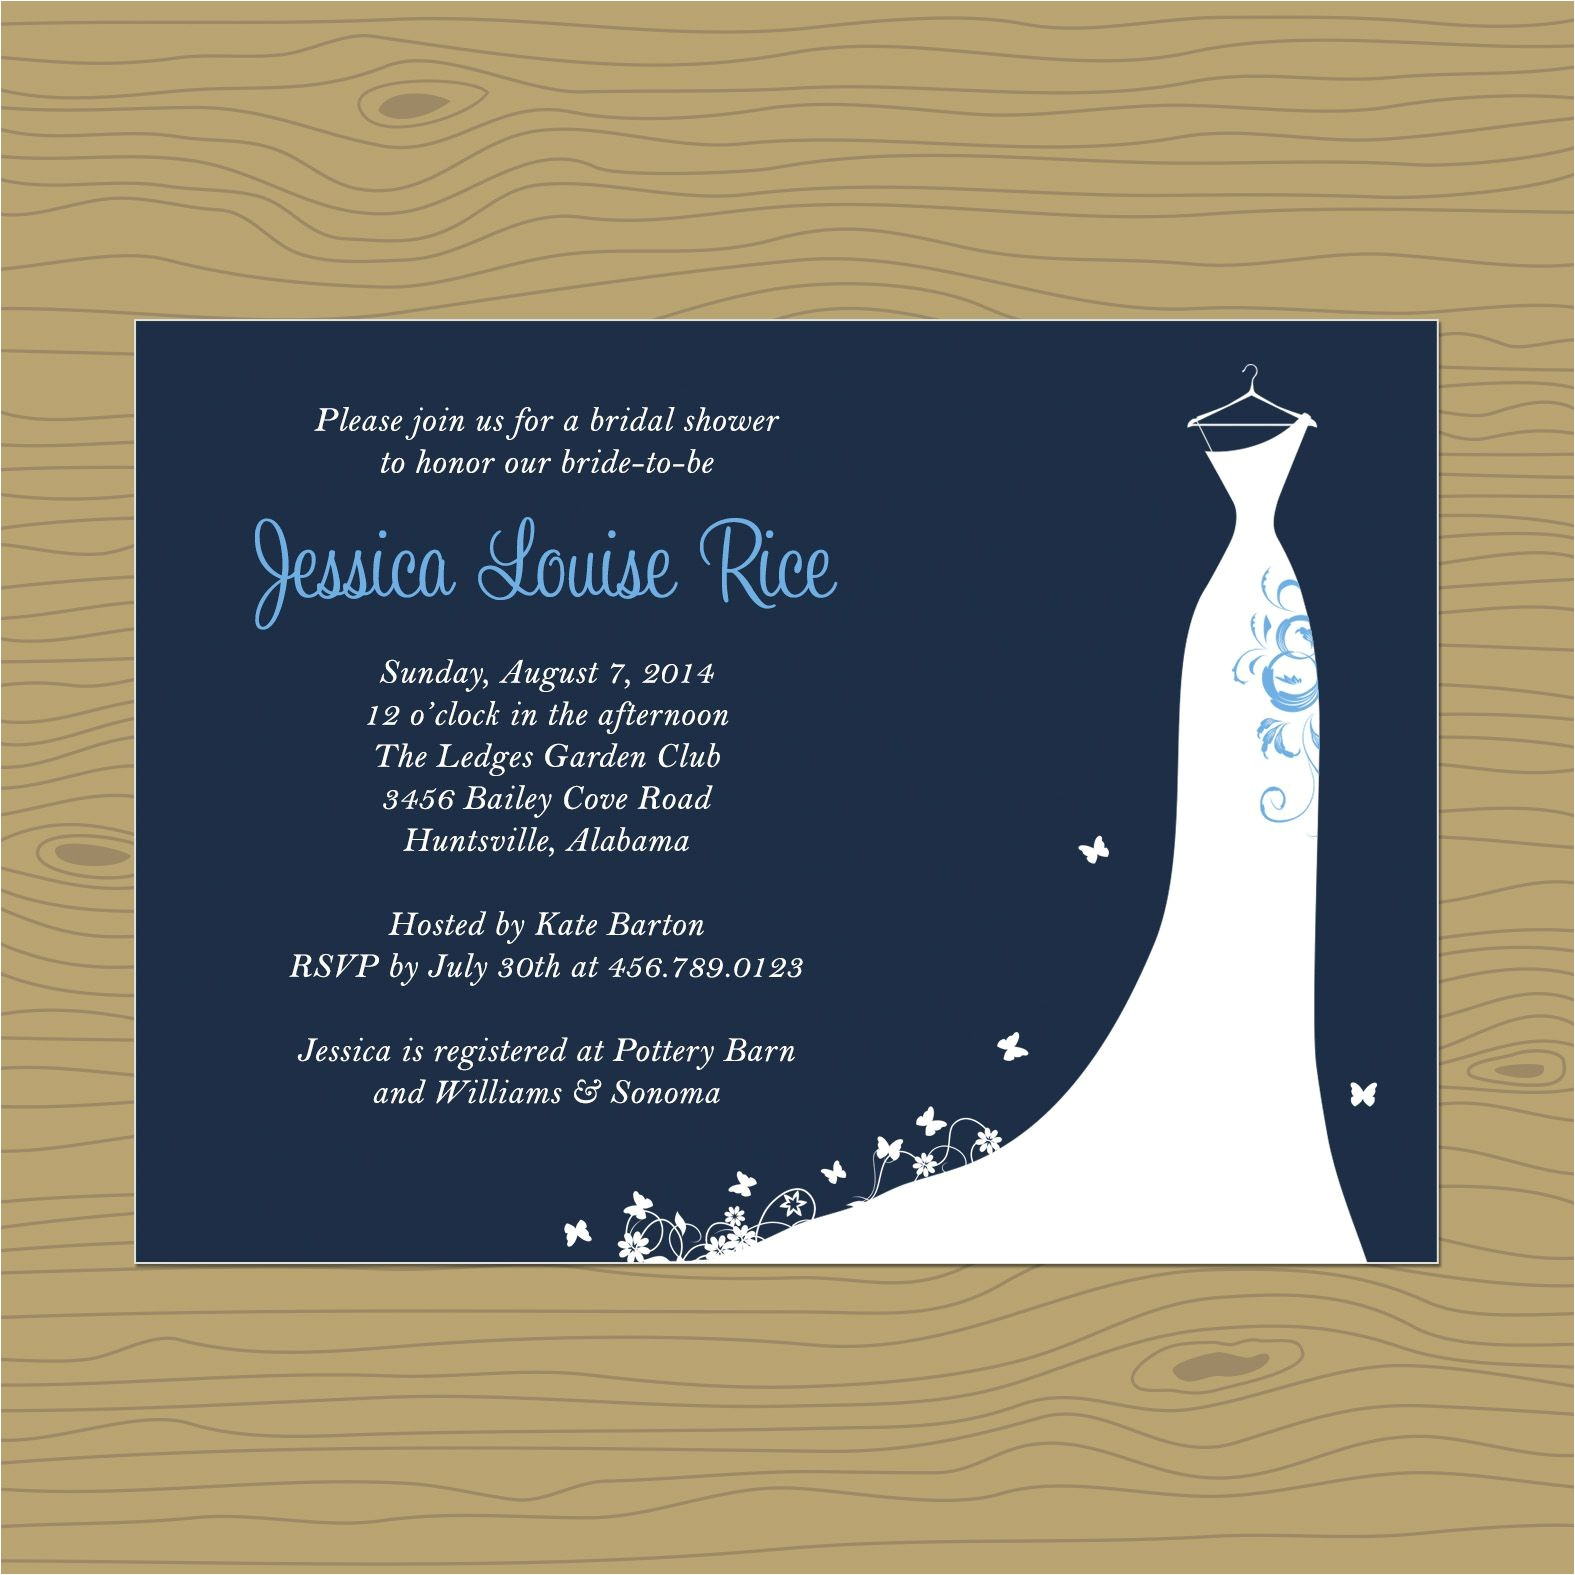 vista print bridal shower invites engagement party invitations vistaprint birthday invitation